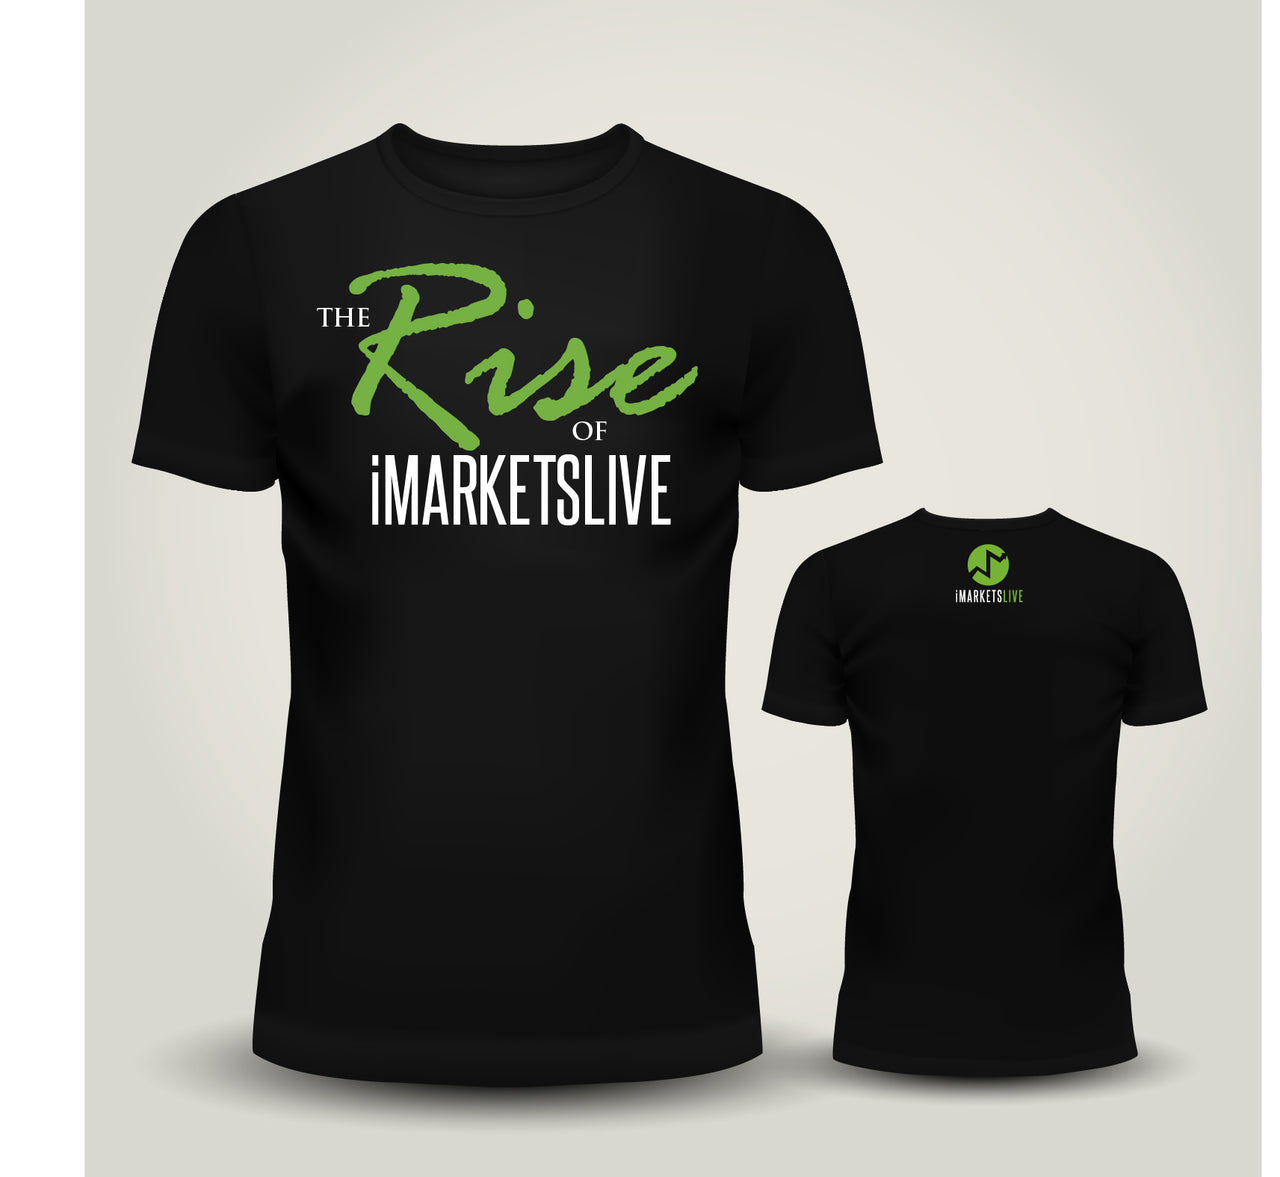 IML Gear - Men's Black Classic Tee - The RISE of iMARKETSLIVE